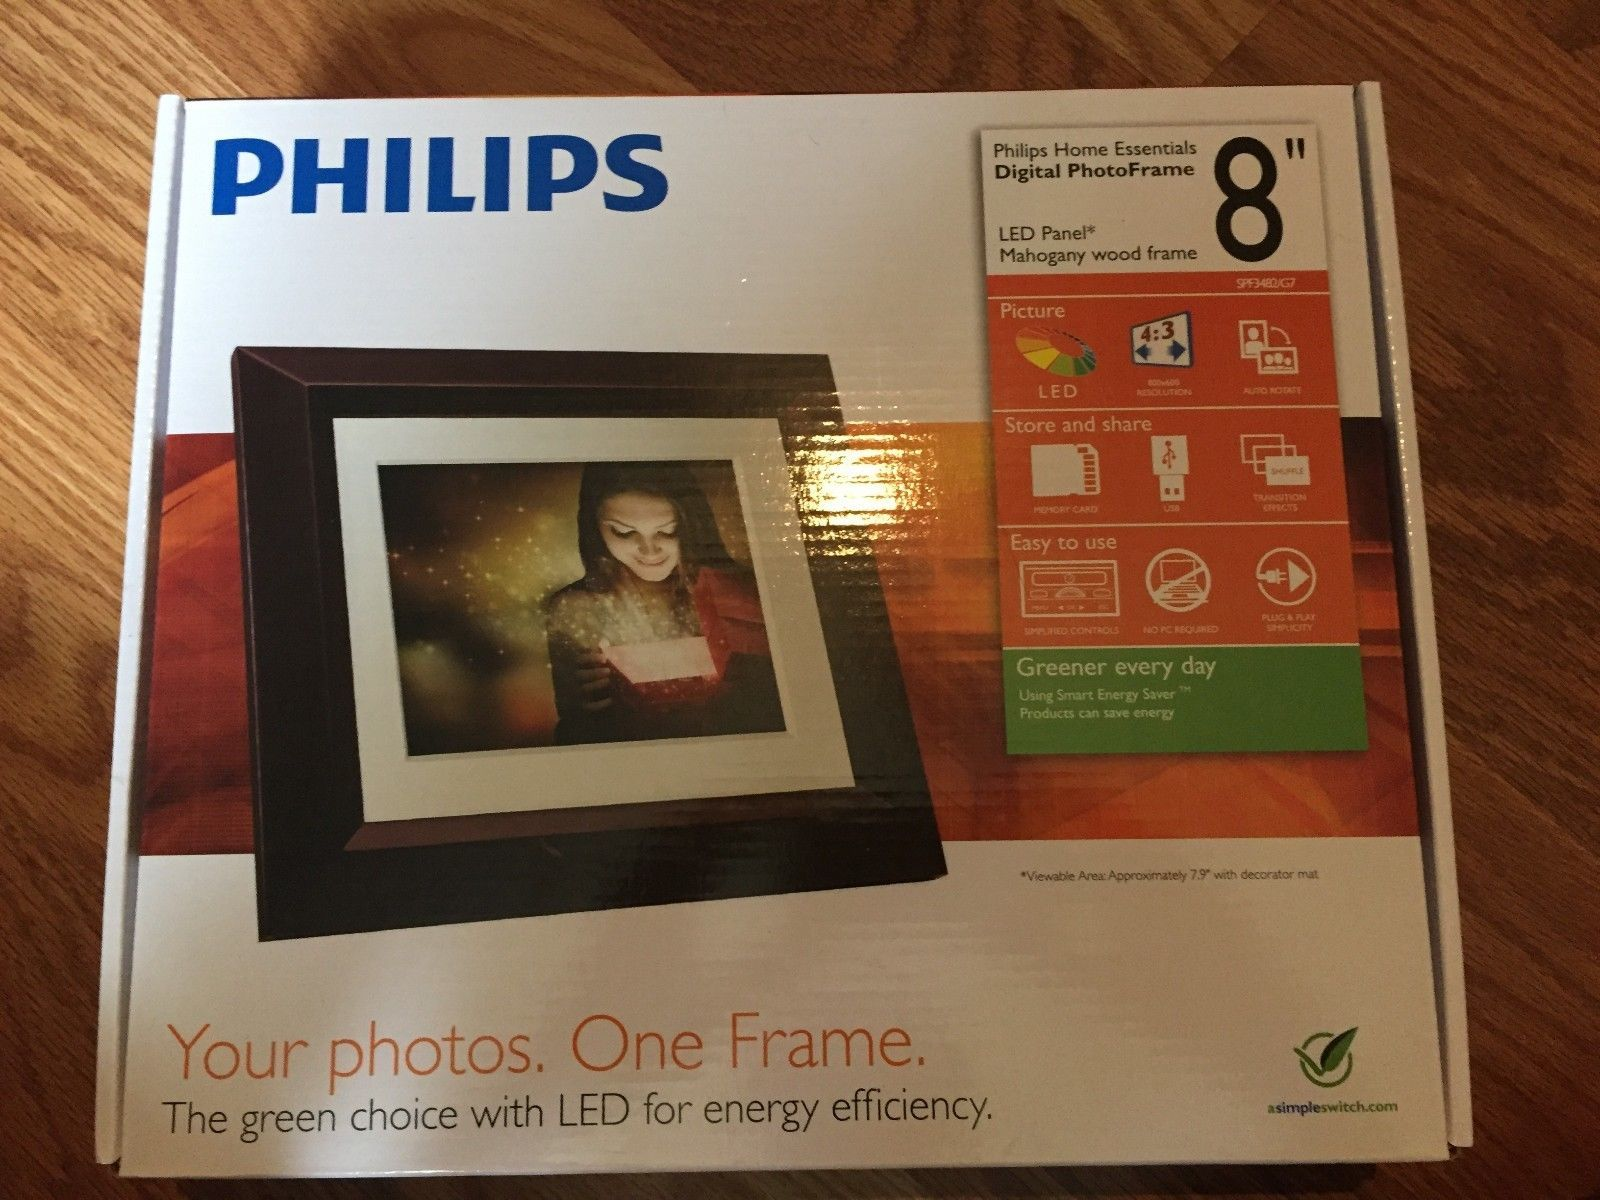 Philips Spf3482 Home Essentials Digital Photoframe 8 Lcd Panel